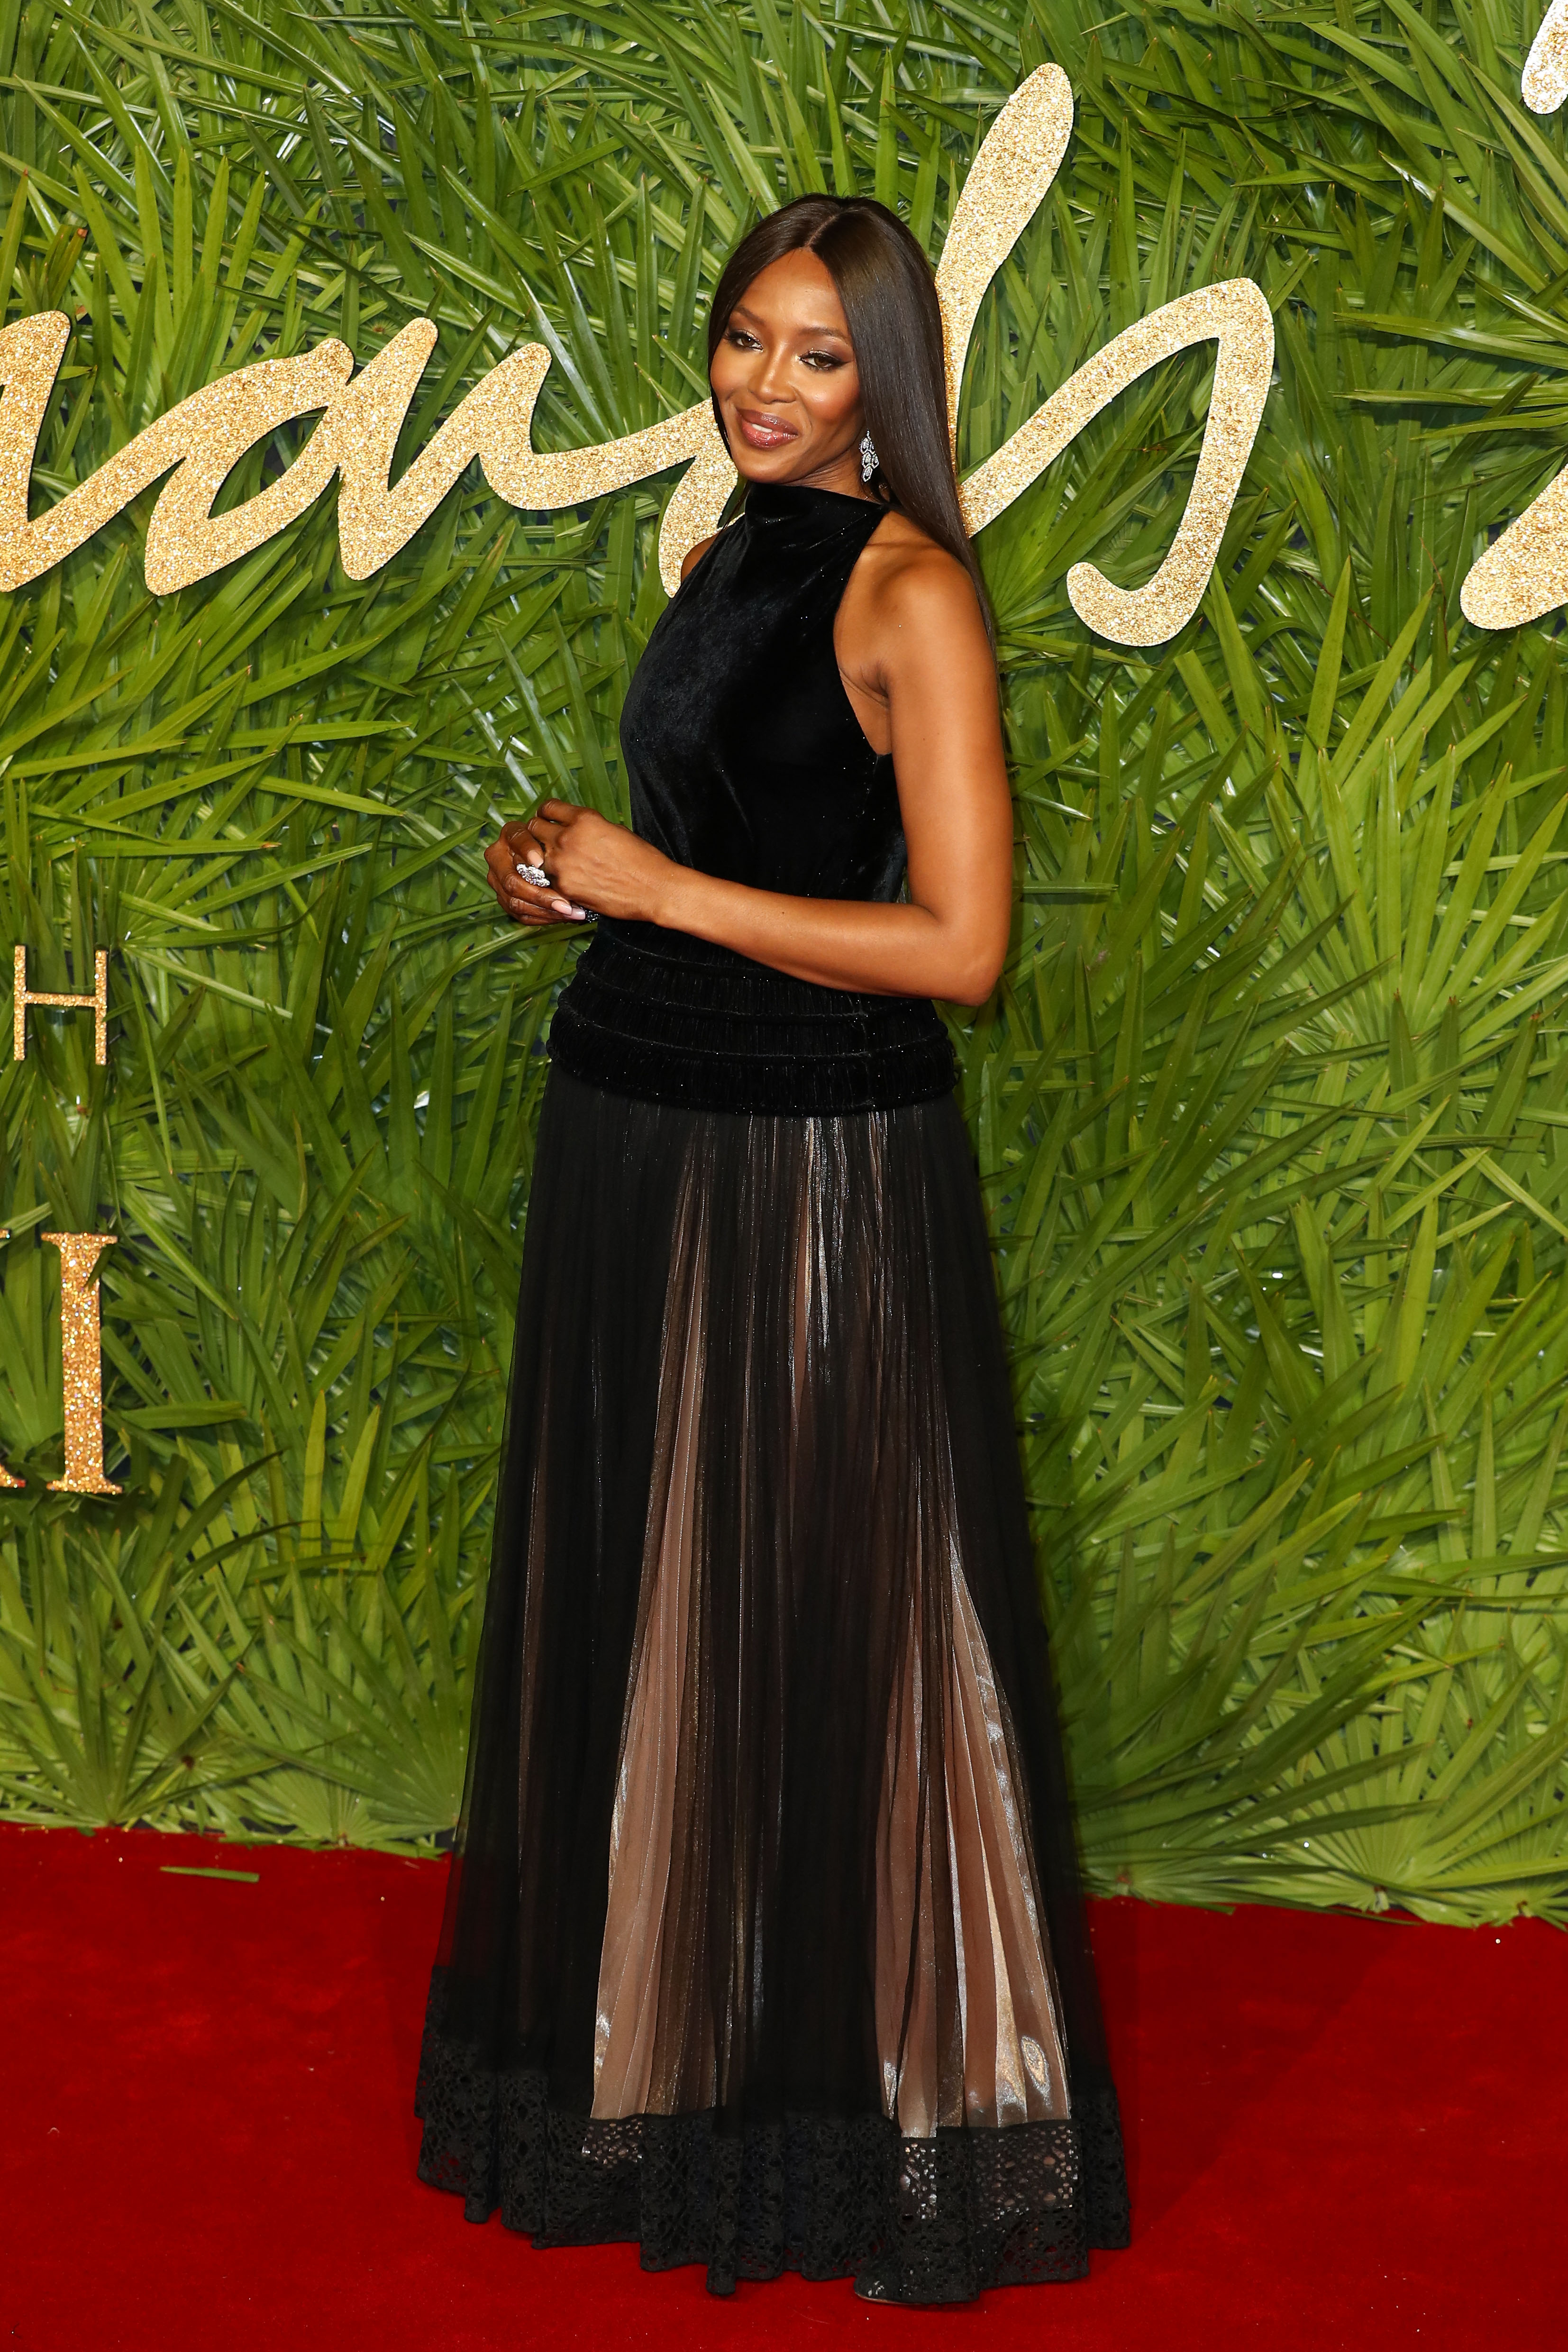 Naomi Campbell and her mother Valerie Morris attend The Fashion Awards 2017 in partnership with Swarovski at Royal Albert Hall on December 4, 2017 in London, England.  <P> Pictured: Naomi Campbell and Valerie Morris <B>Ref: SPL1633080  041217  </B><BR/> Picture by: Splash News<BR/> </P><P> <B>Splash News and Pictures</B><BR/> Los Angeles:310-821-2666<BR/> New York:212-619-2666<BR/> London:870-934-2666<BR/> <span id=